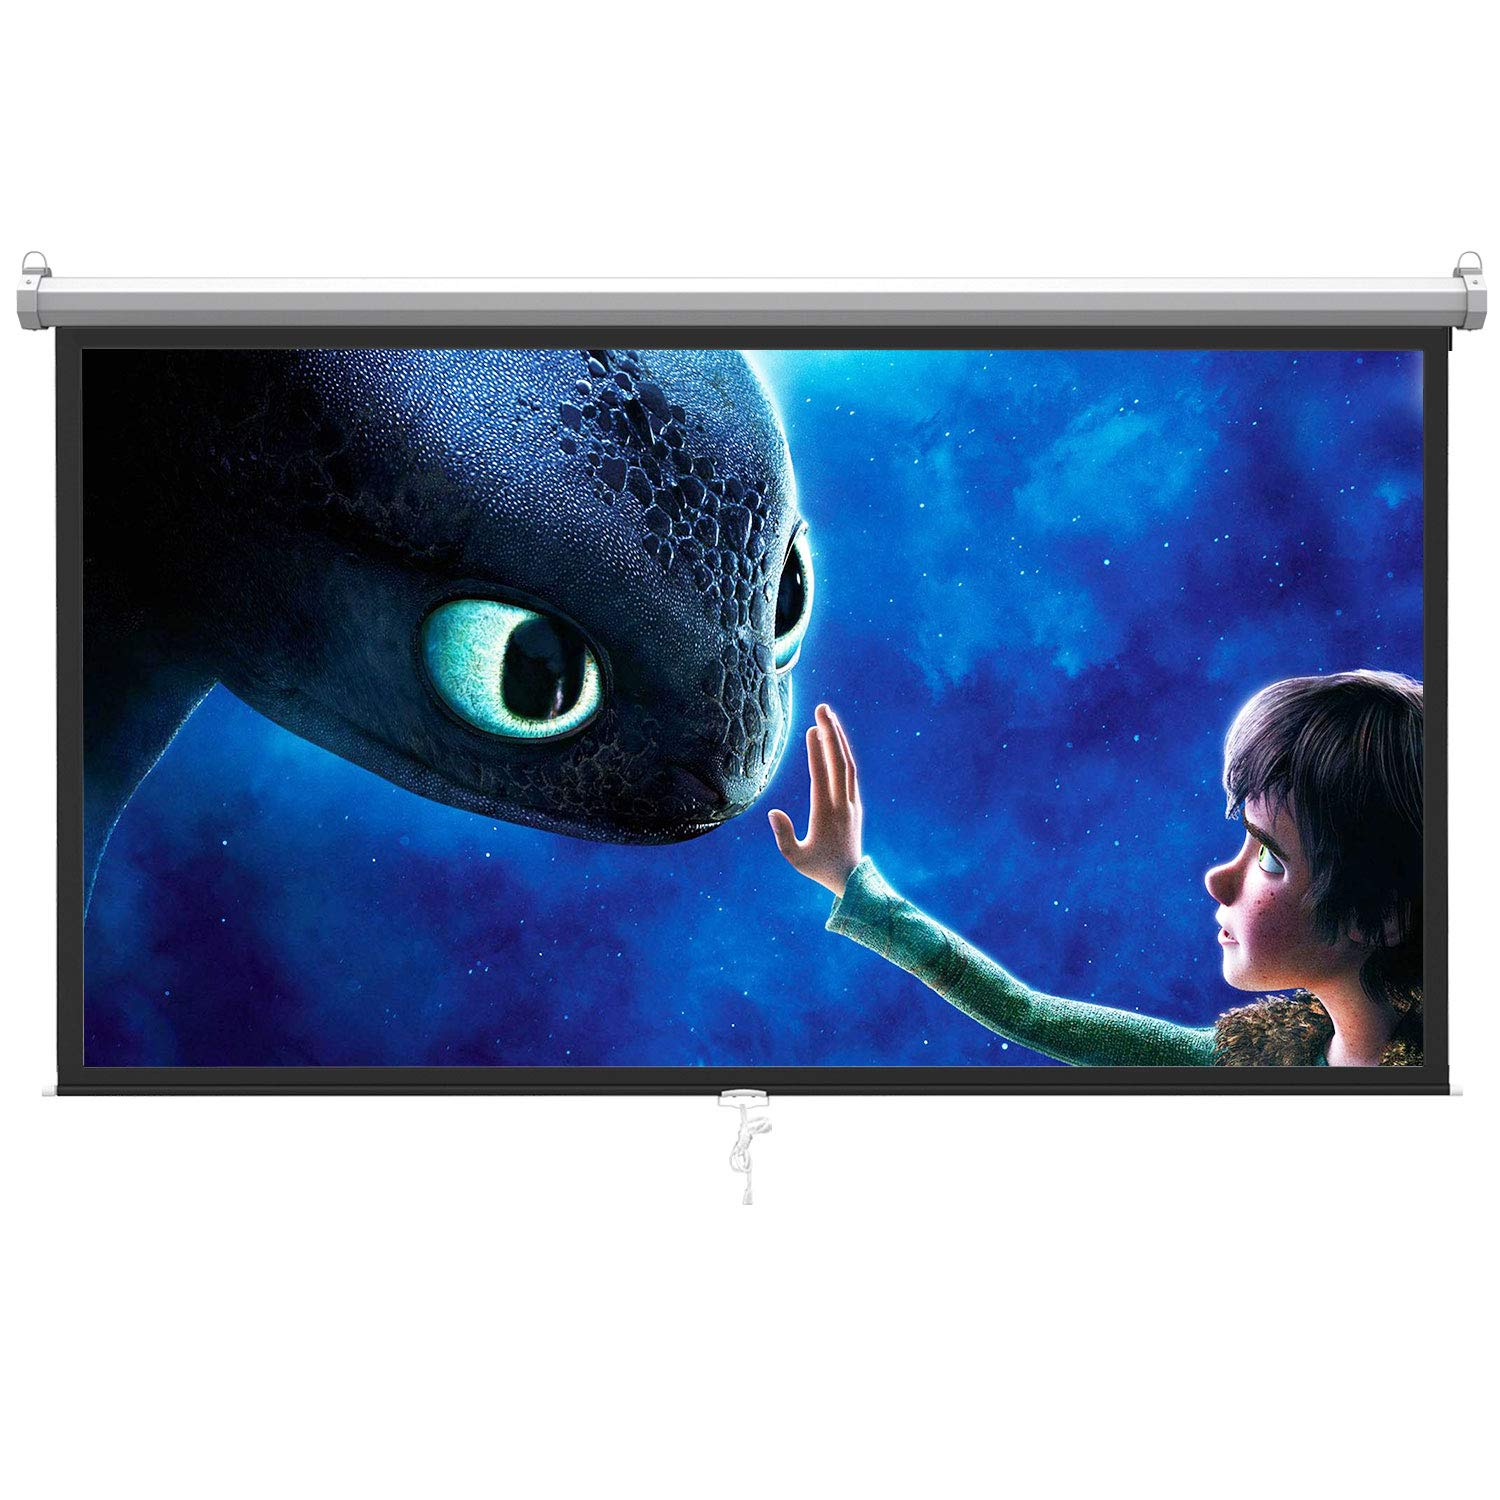 120 inch Projector Screen PullDown Projector Screen Portable with 16:9 HD 4K Screen for School Home Theatre Cinema Foldable Projector Screen